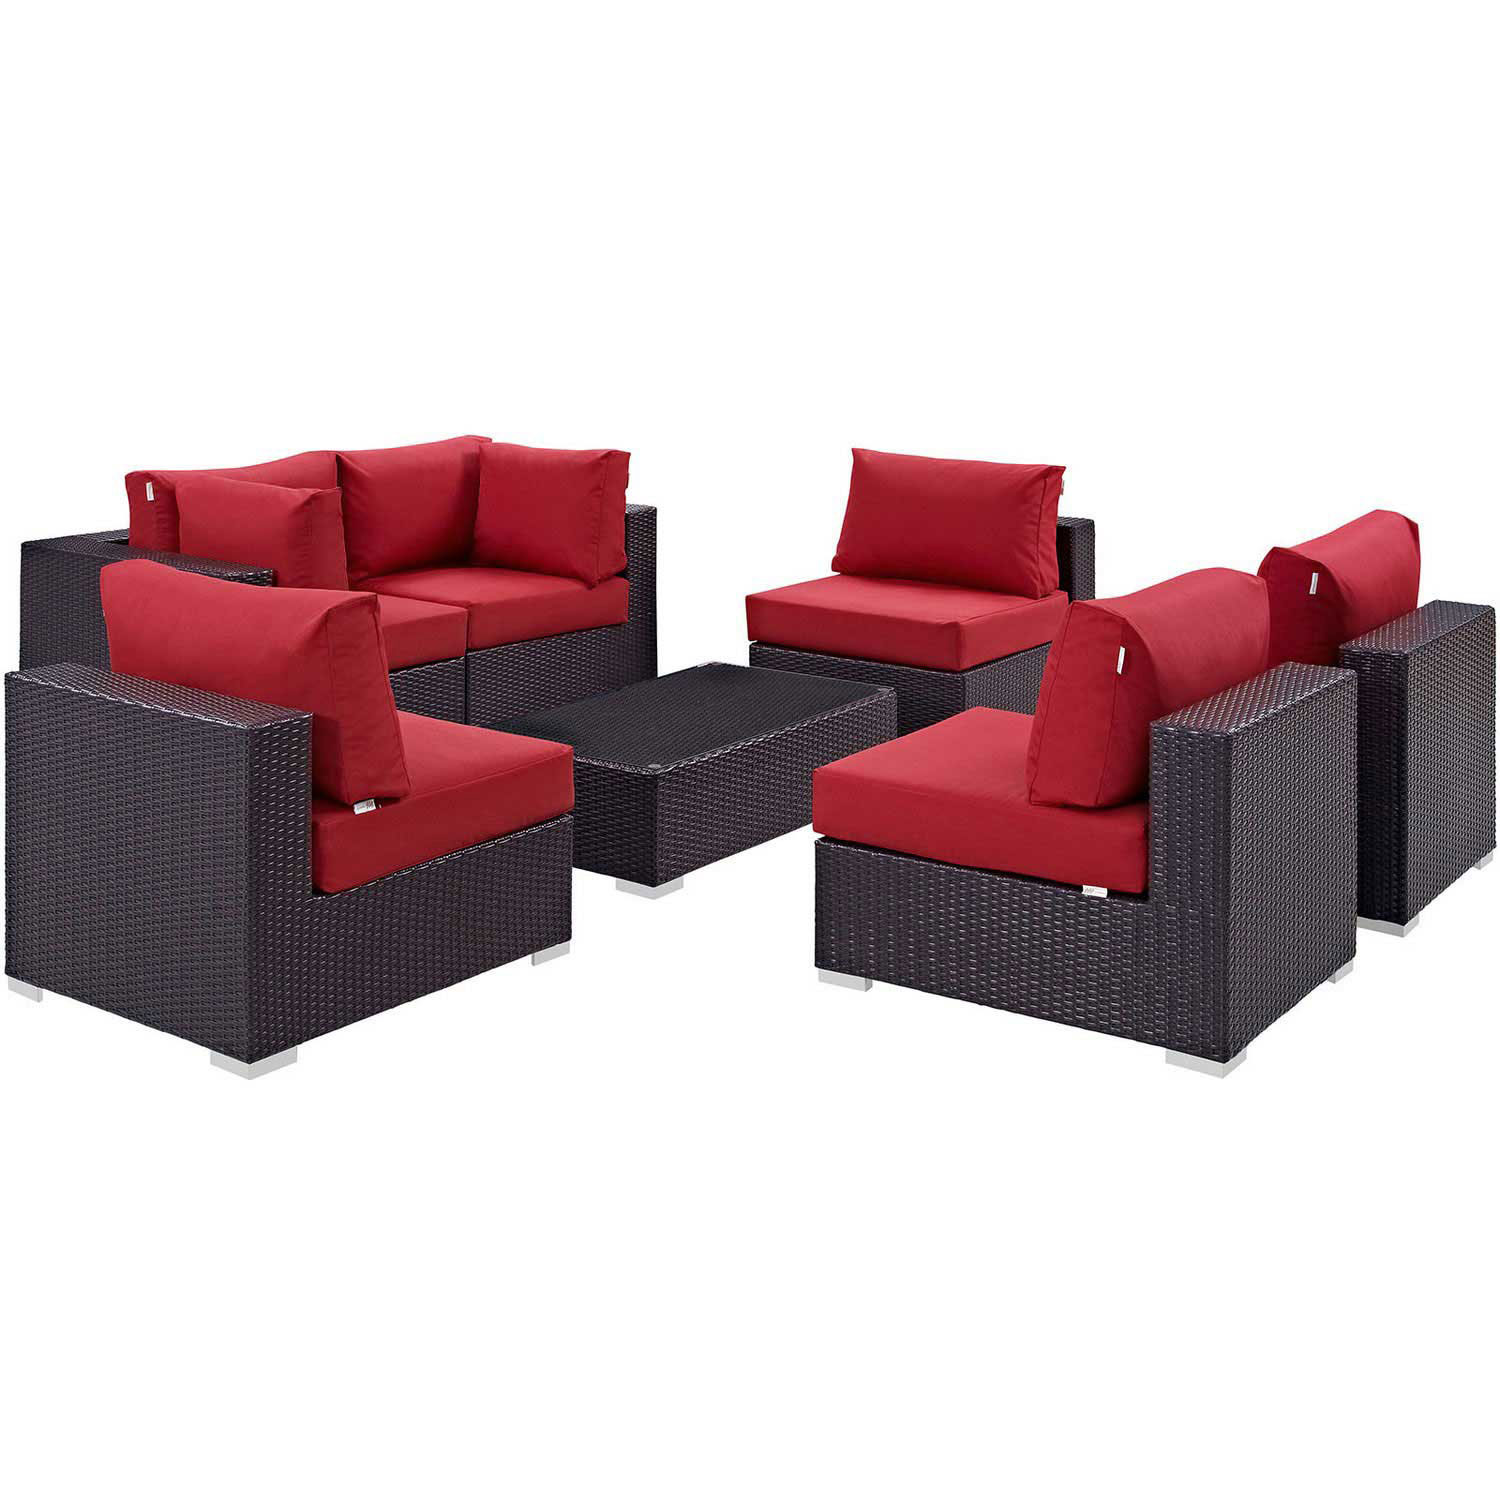 Modway Convene 7 Piece Outdoor Patio Sectional Set - Espresso Red